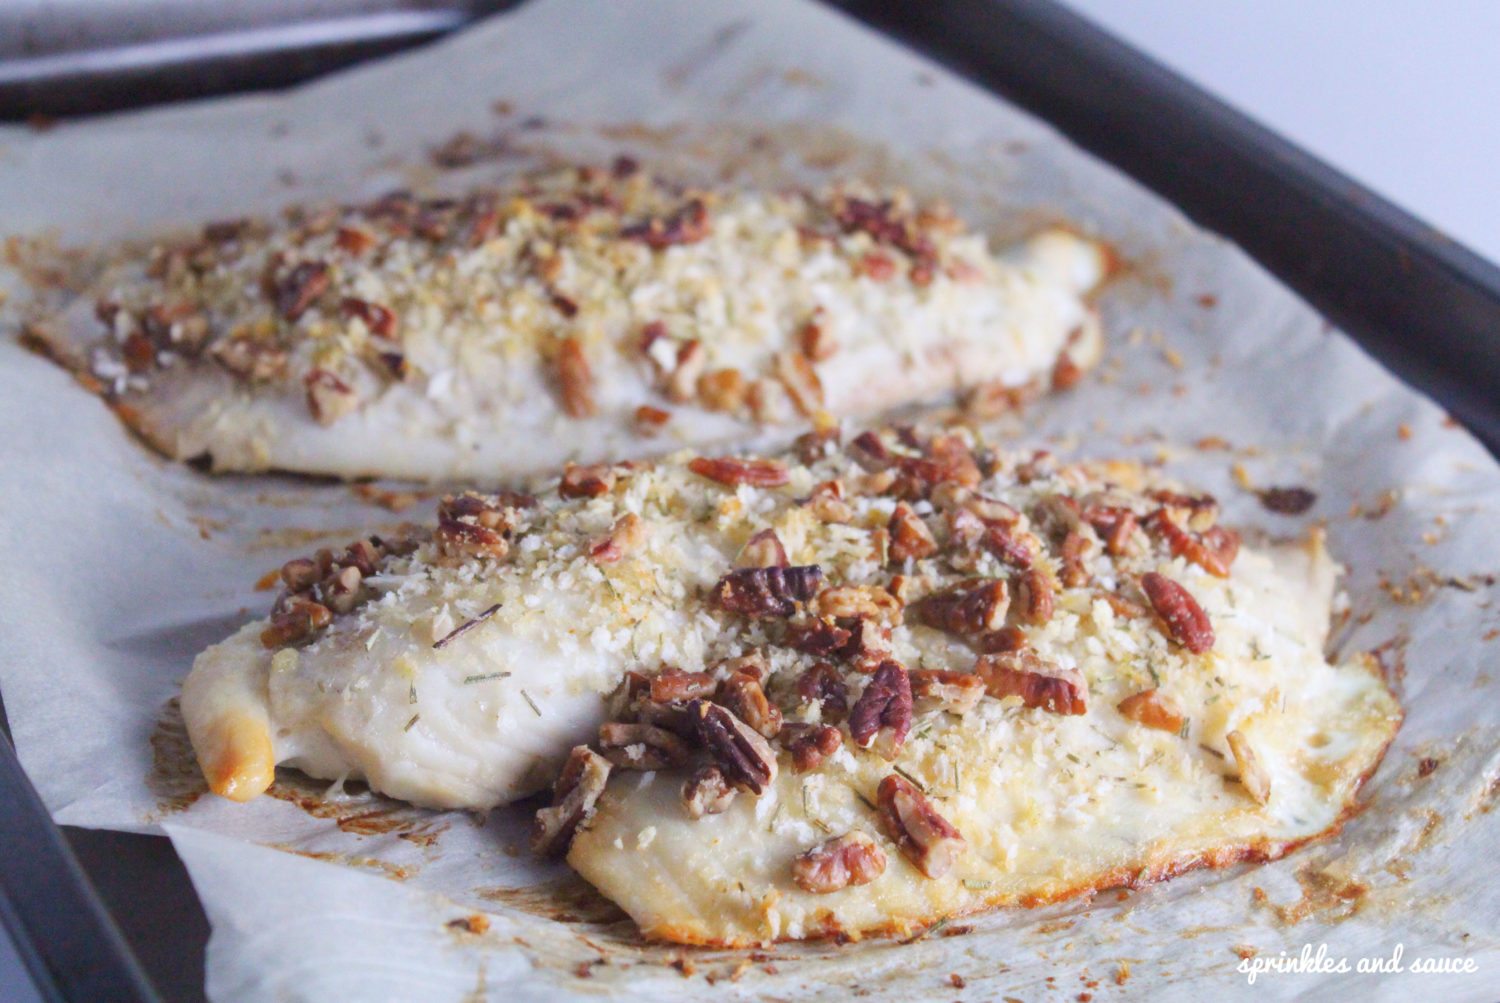 Baked Tilapia with Pecan Rosemary Topping2